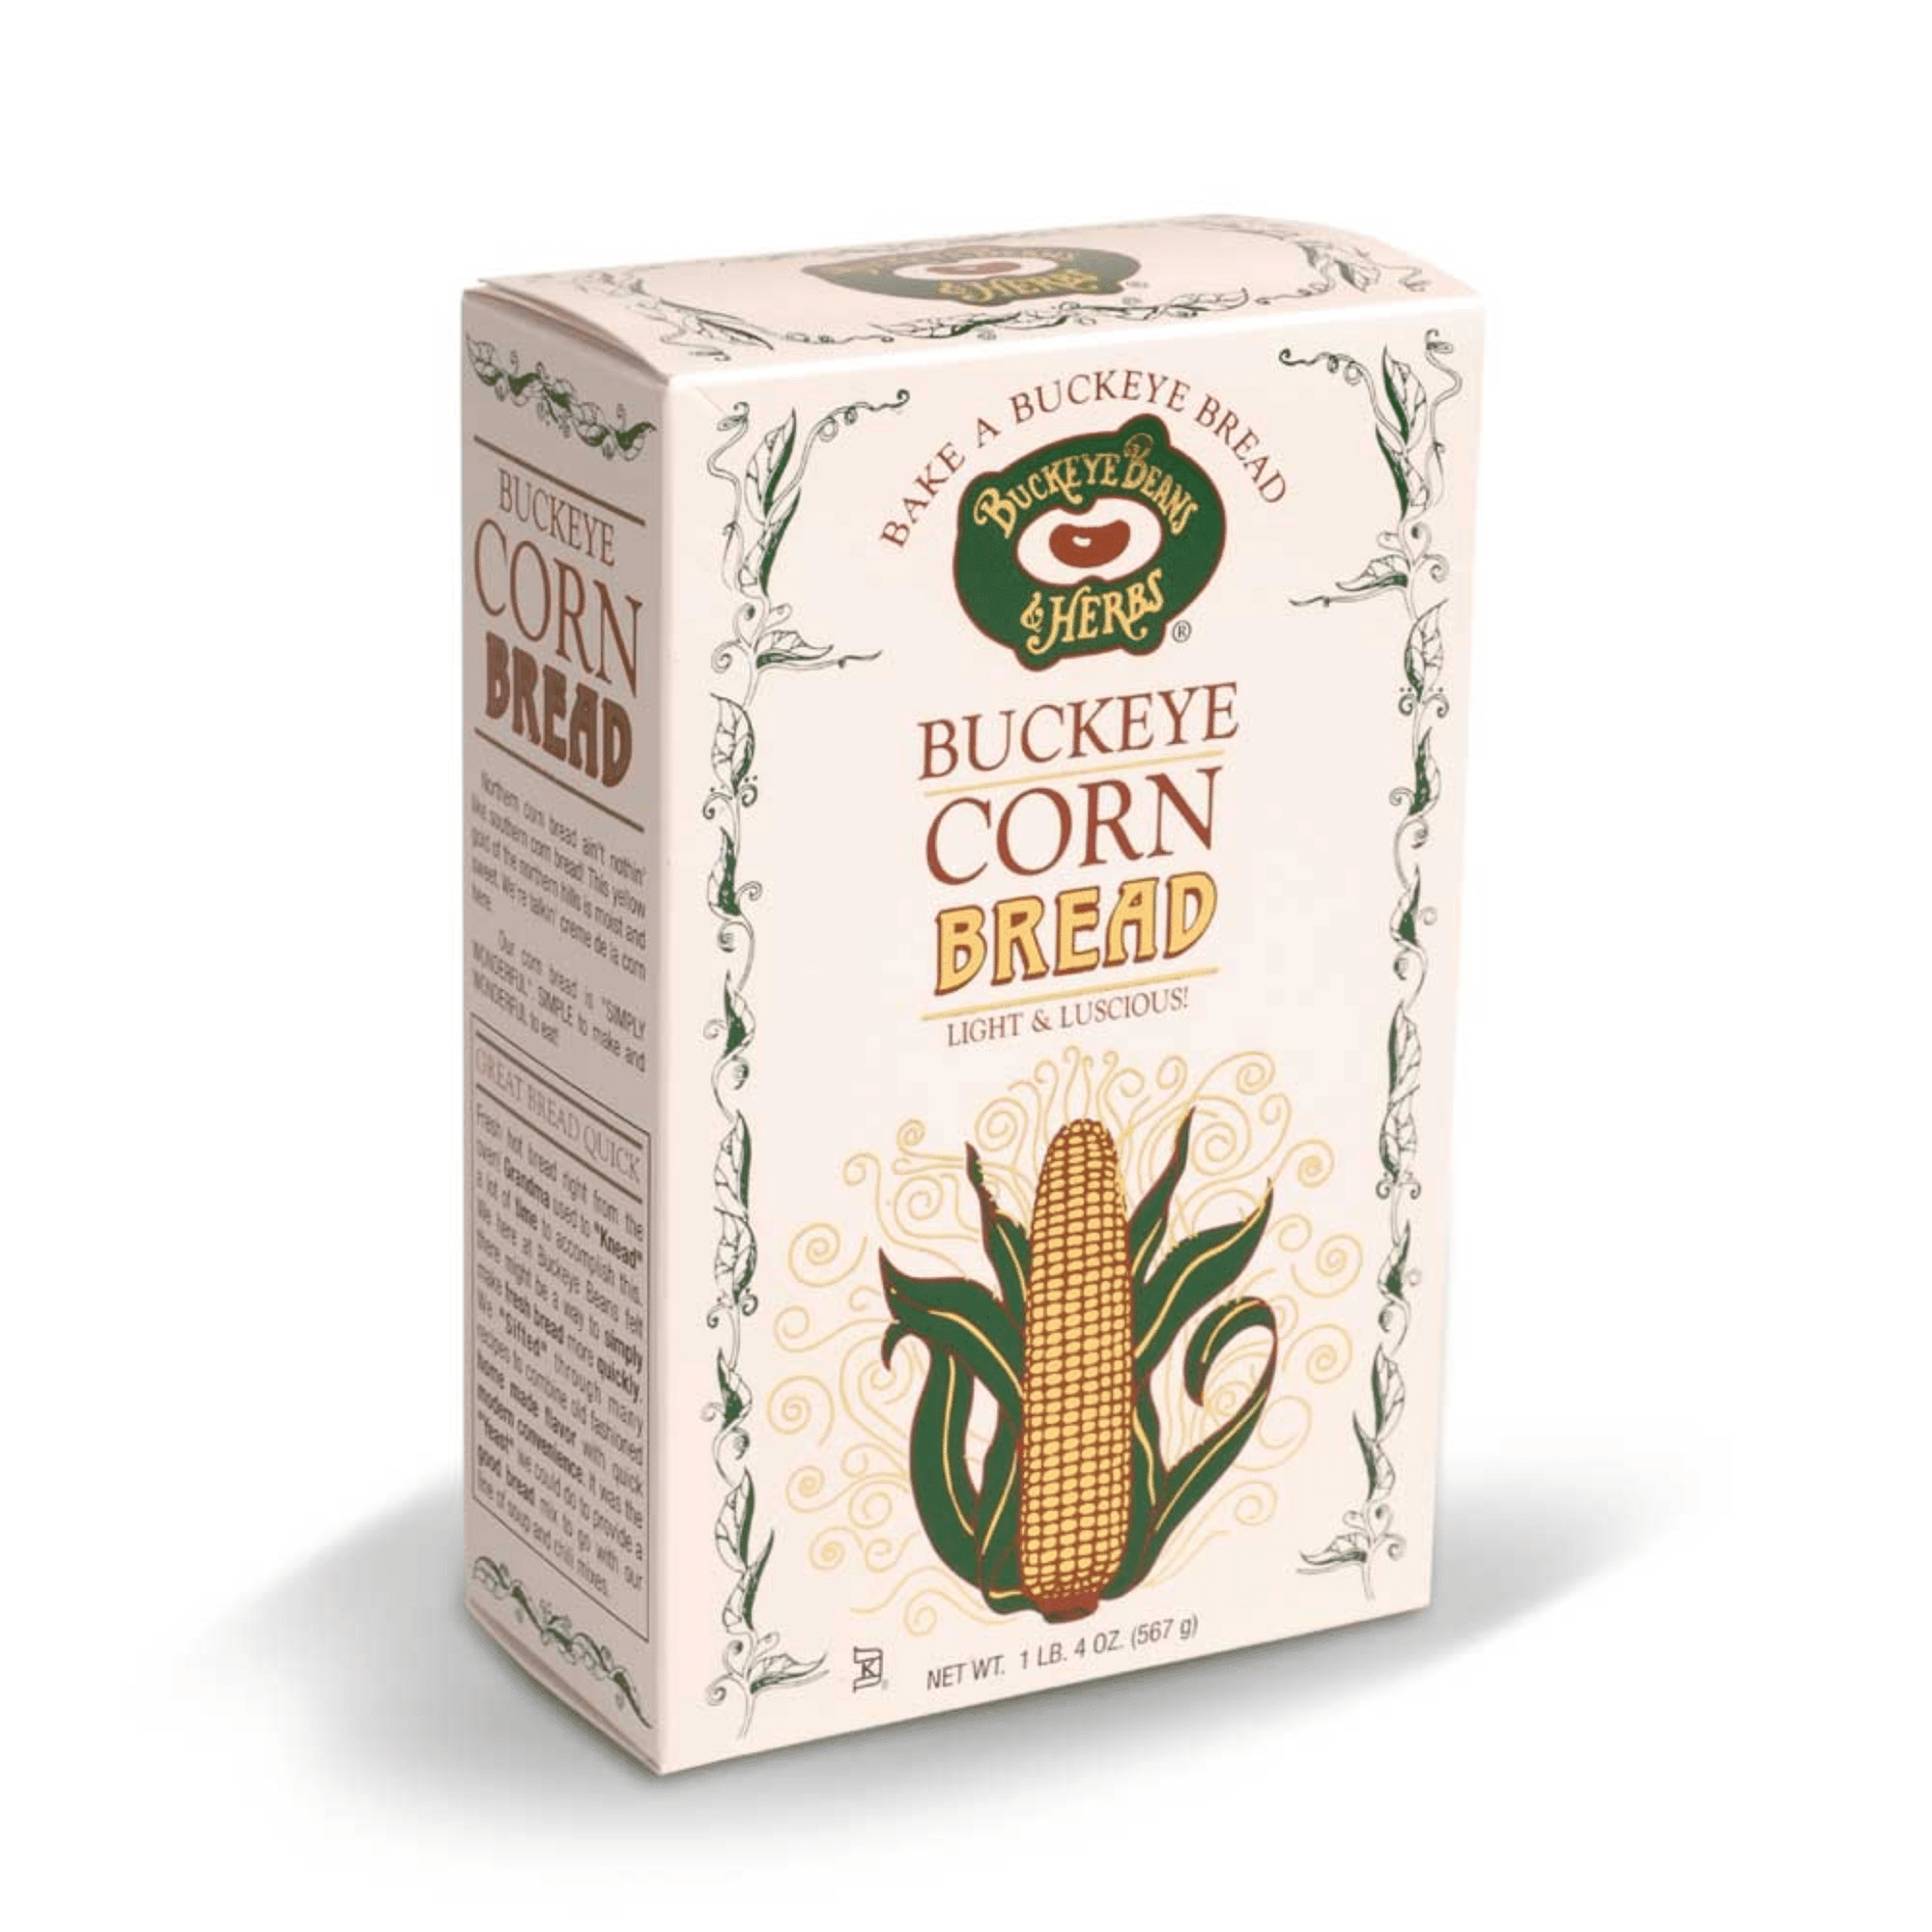 Buckeye Beans and Herbs Light and Luscious Cornbread Mix in a 20-Ounce Box